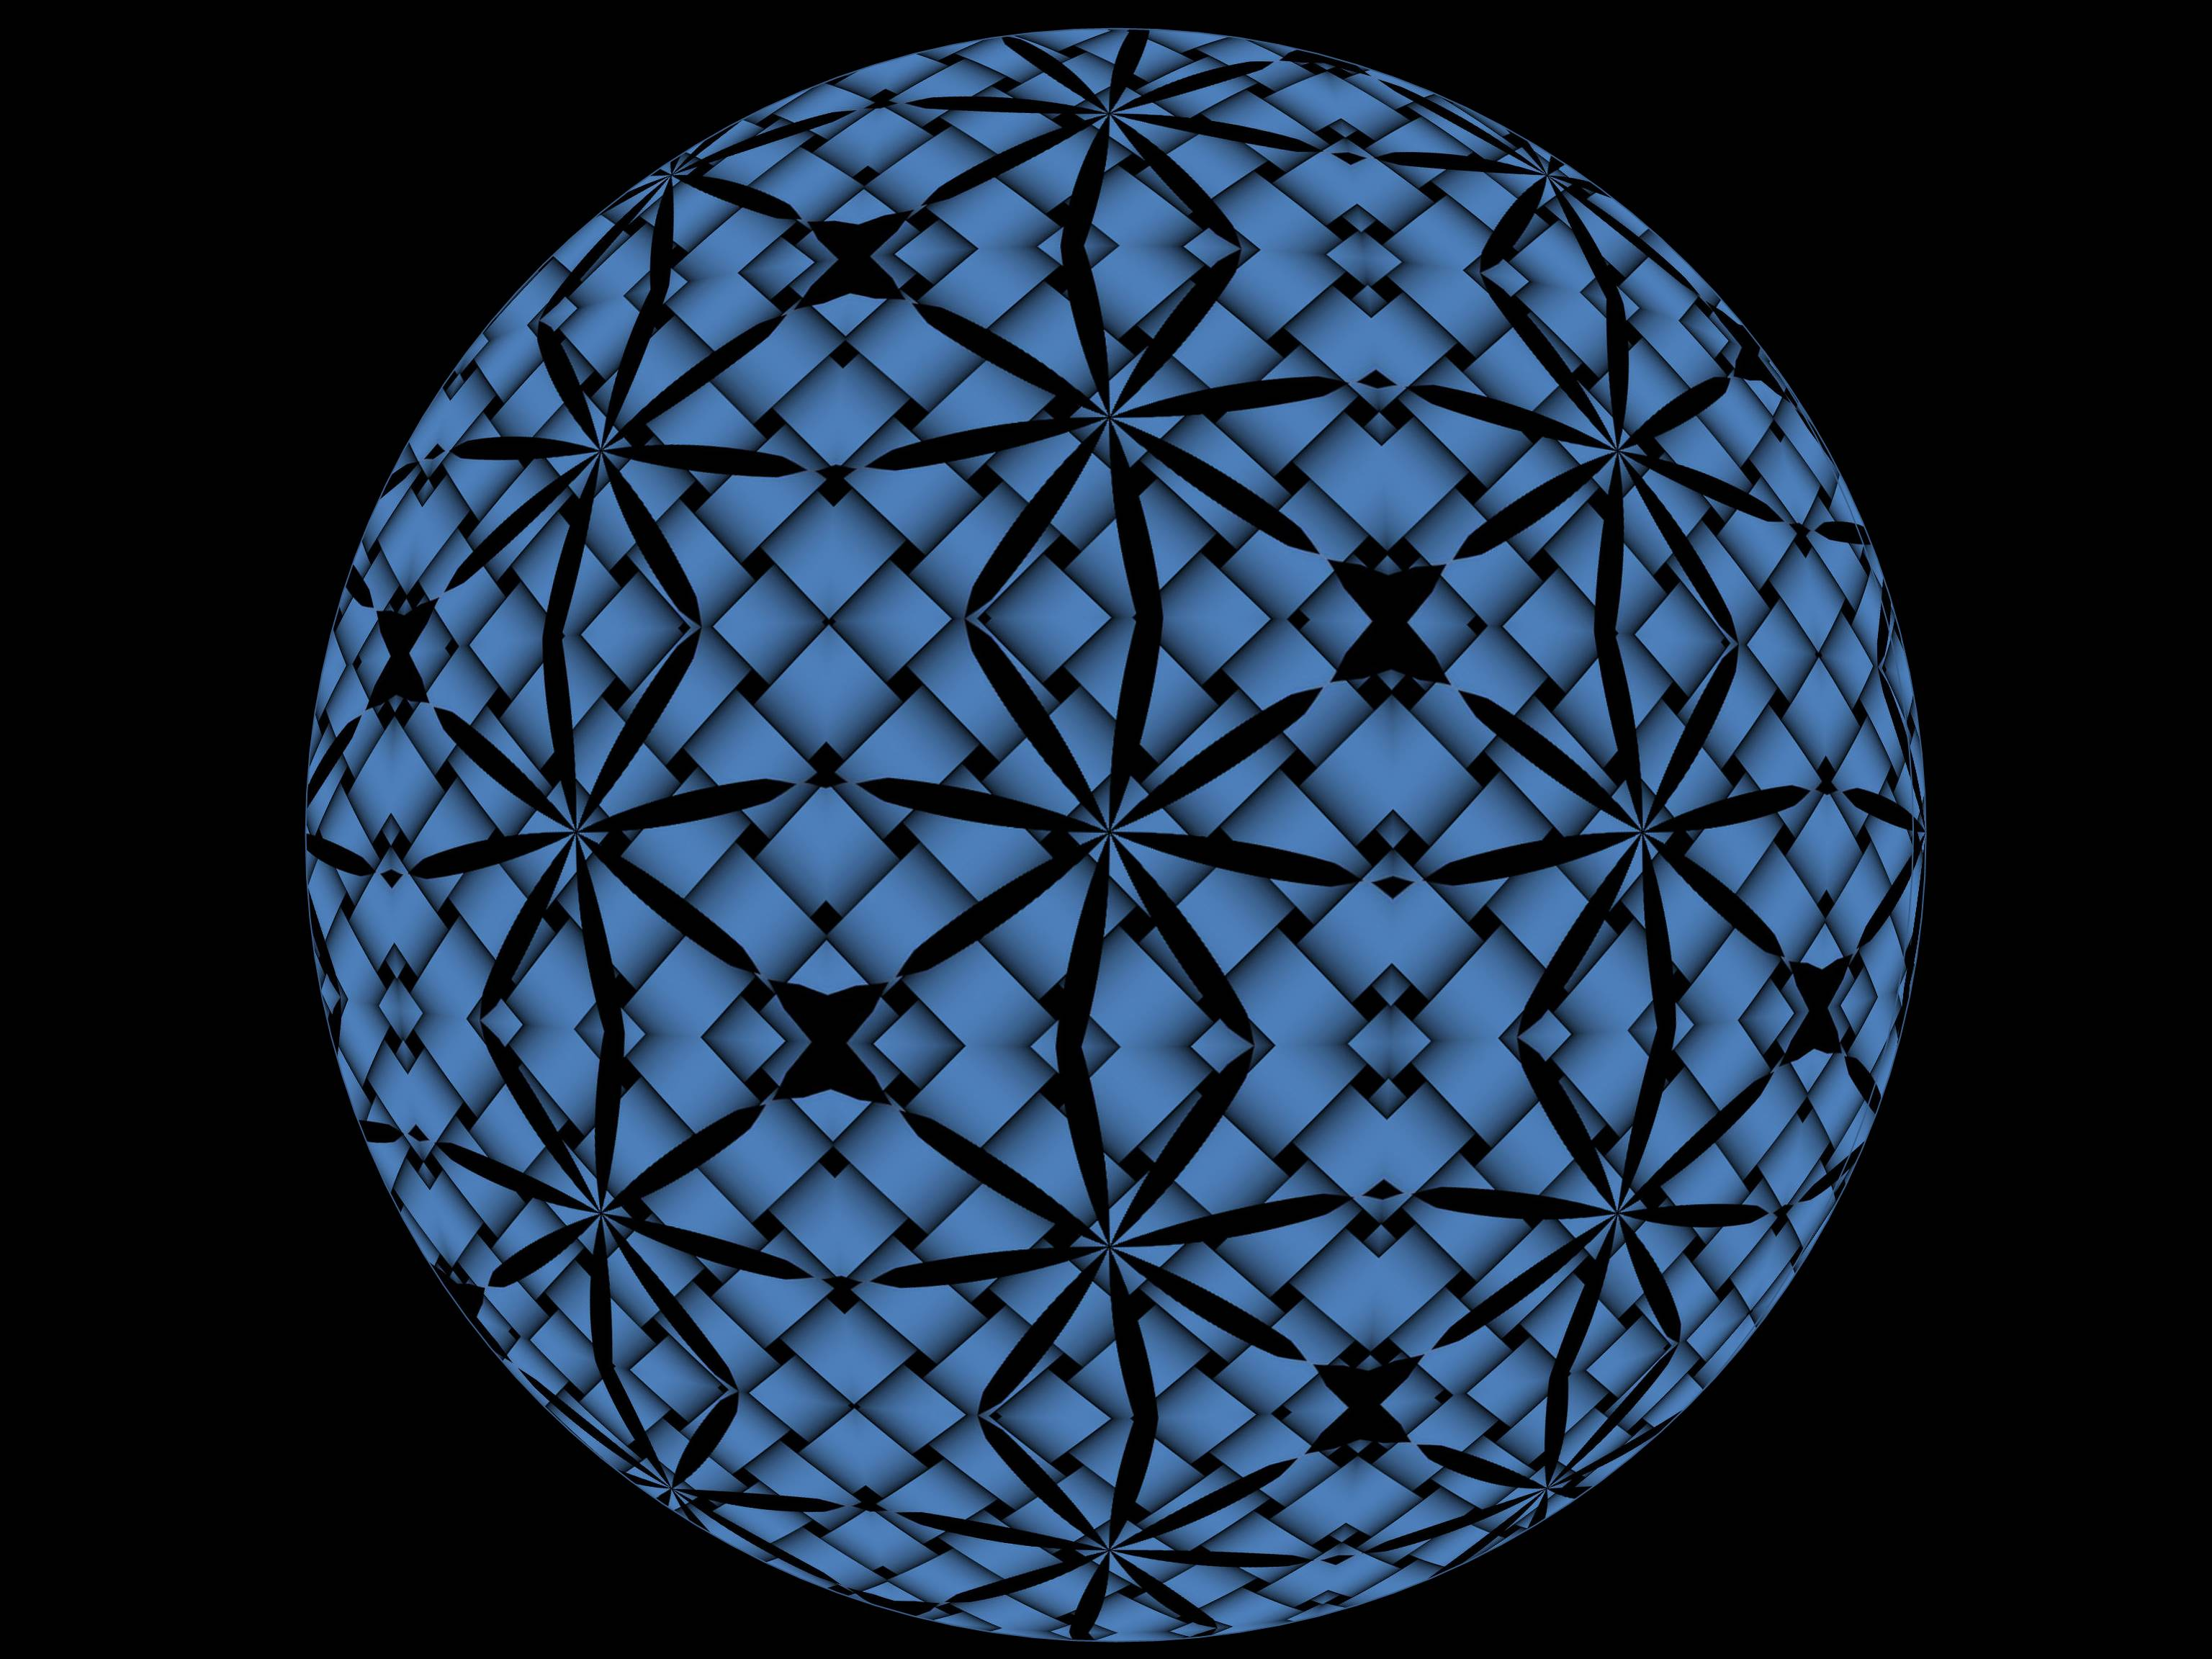 Black and Blue Sphere, Abstract, Art, Black, Blue, HQ Photo